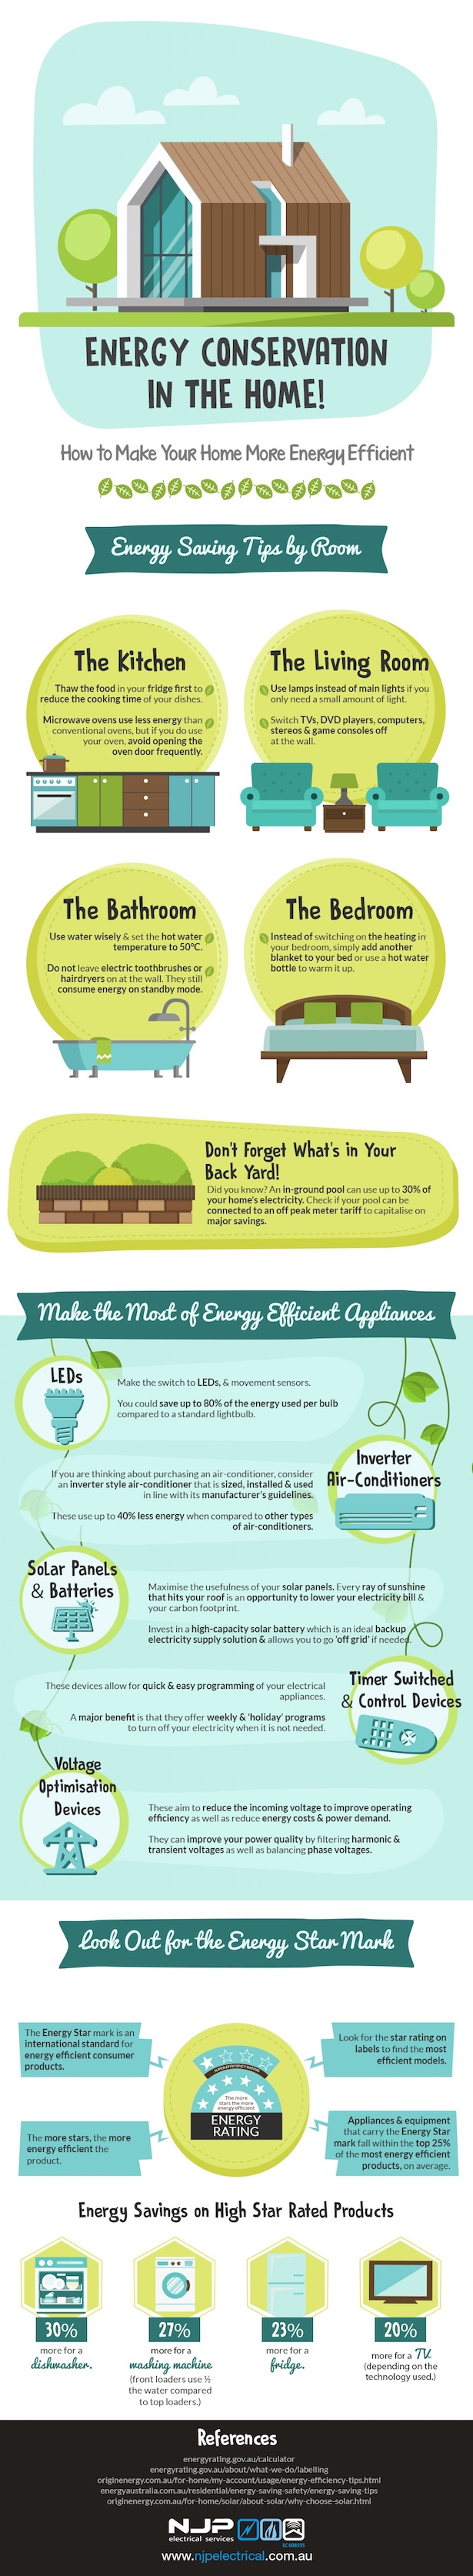 Energy Conservation in the Home Infographic